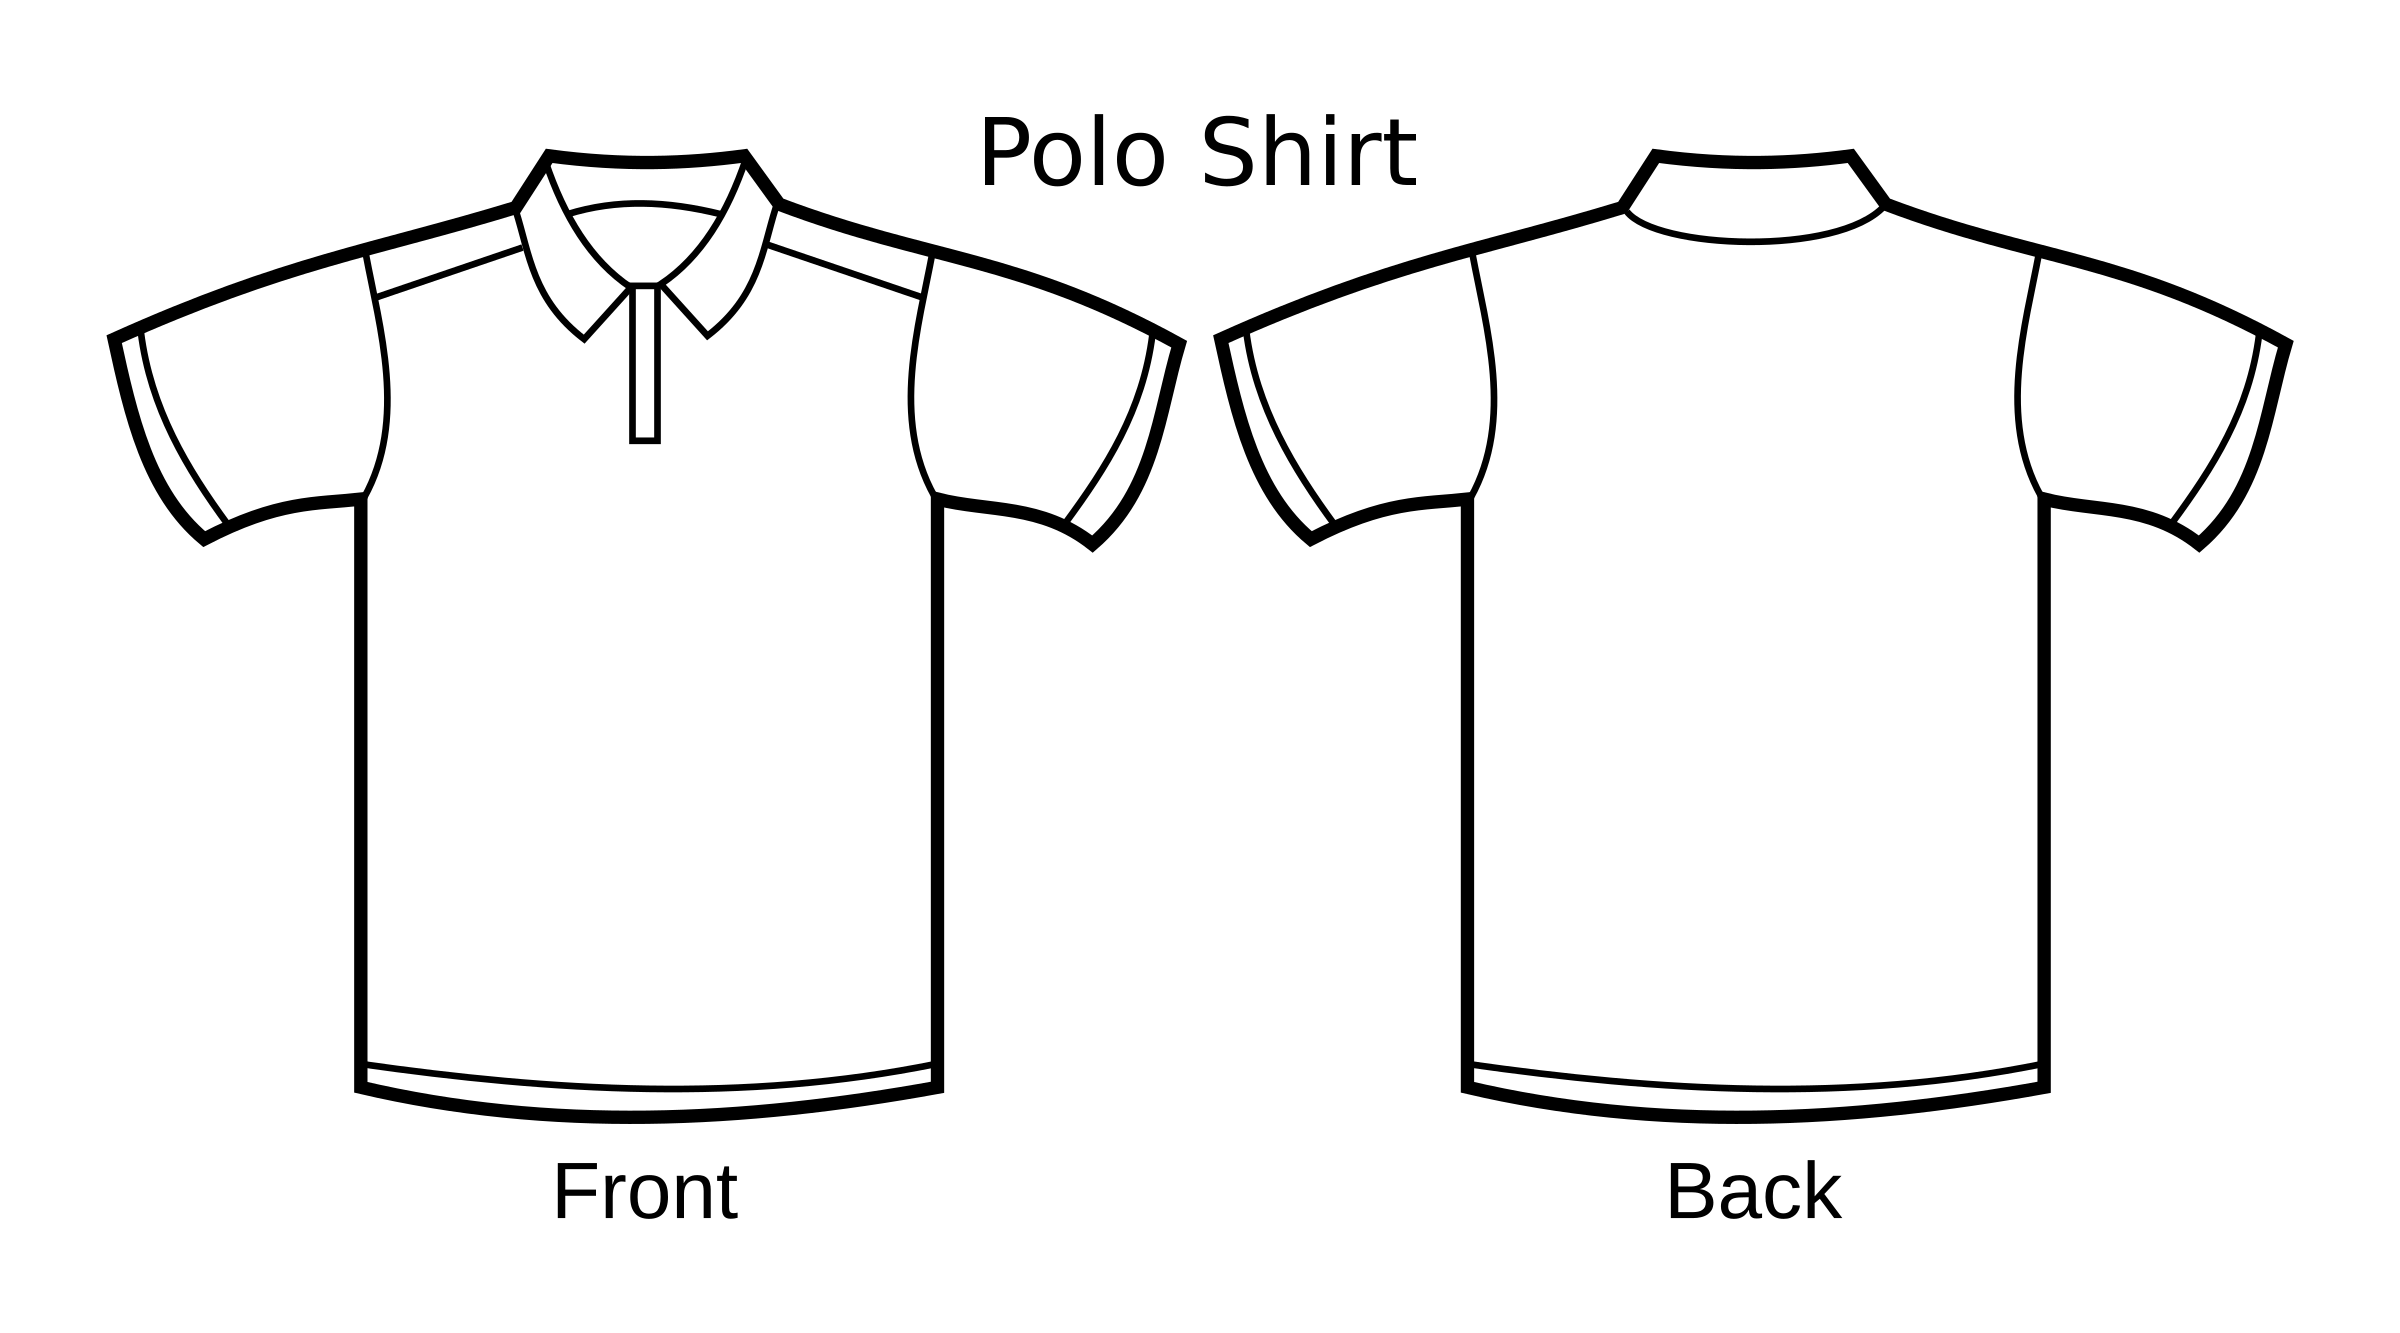 Black t shirt model template - Polo Shirt Template